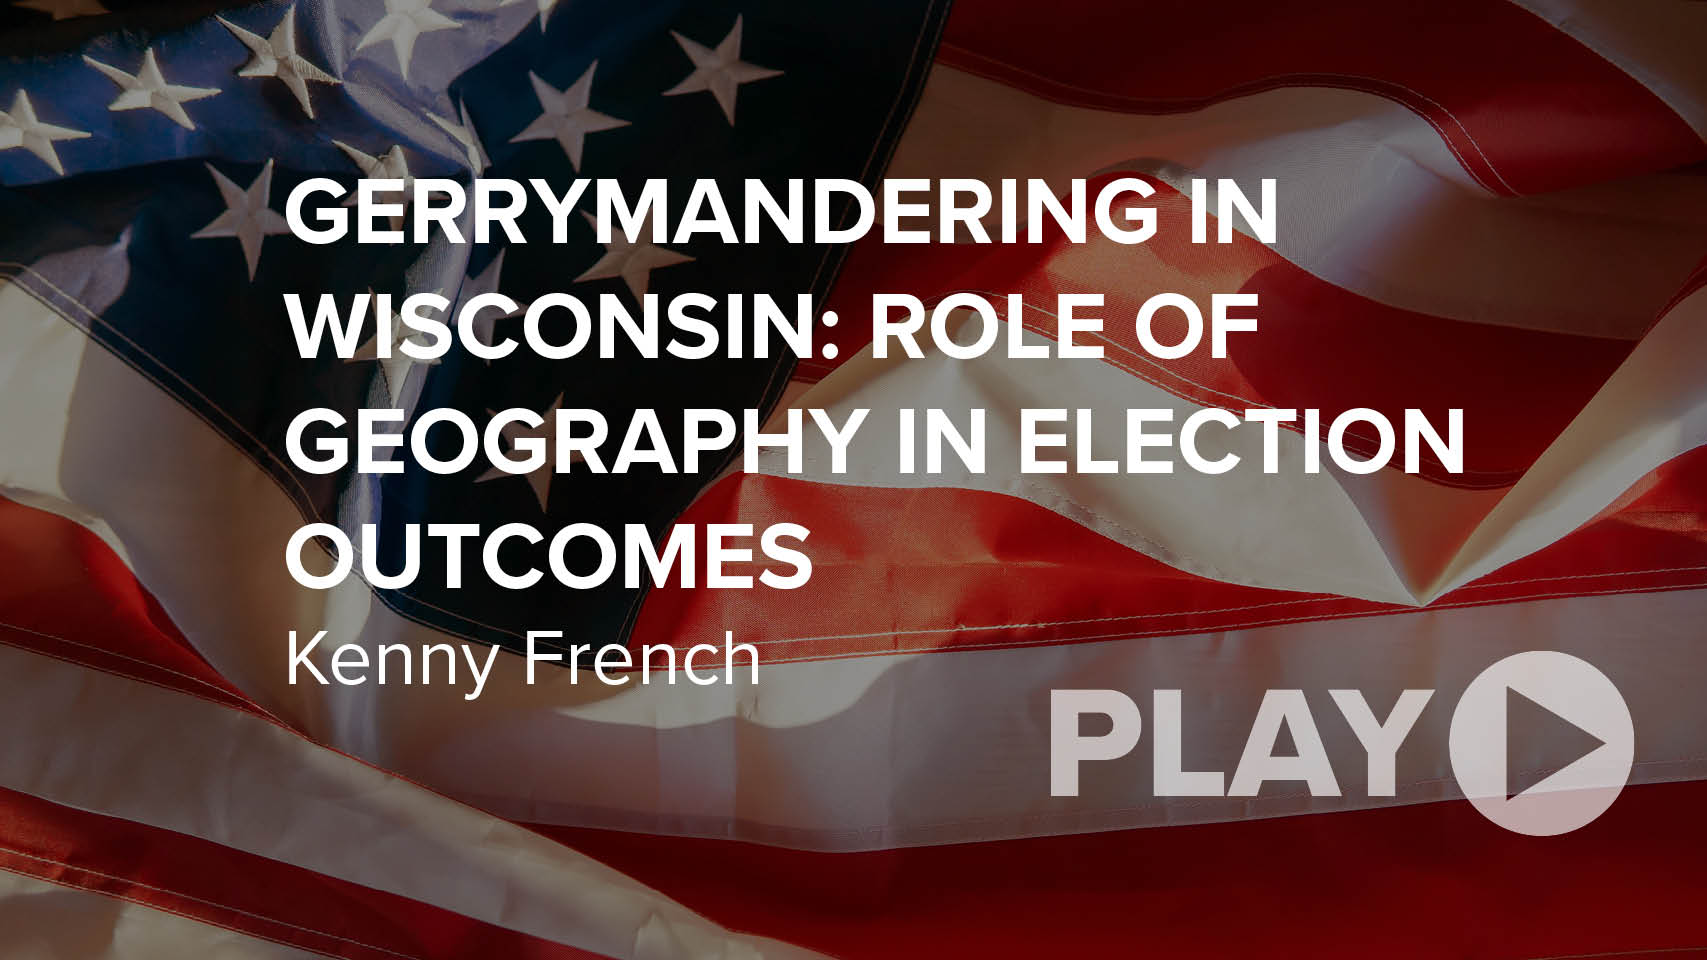 Gerrymandering in Wisconsin: Role of Geography in Election Outcomes